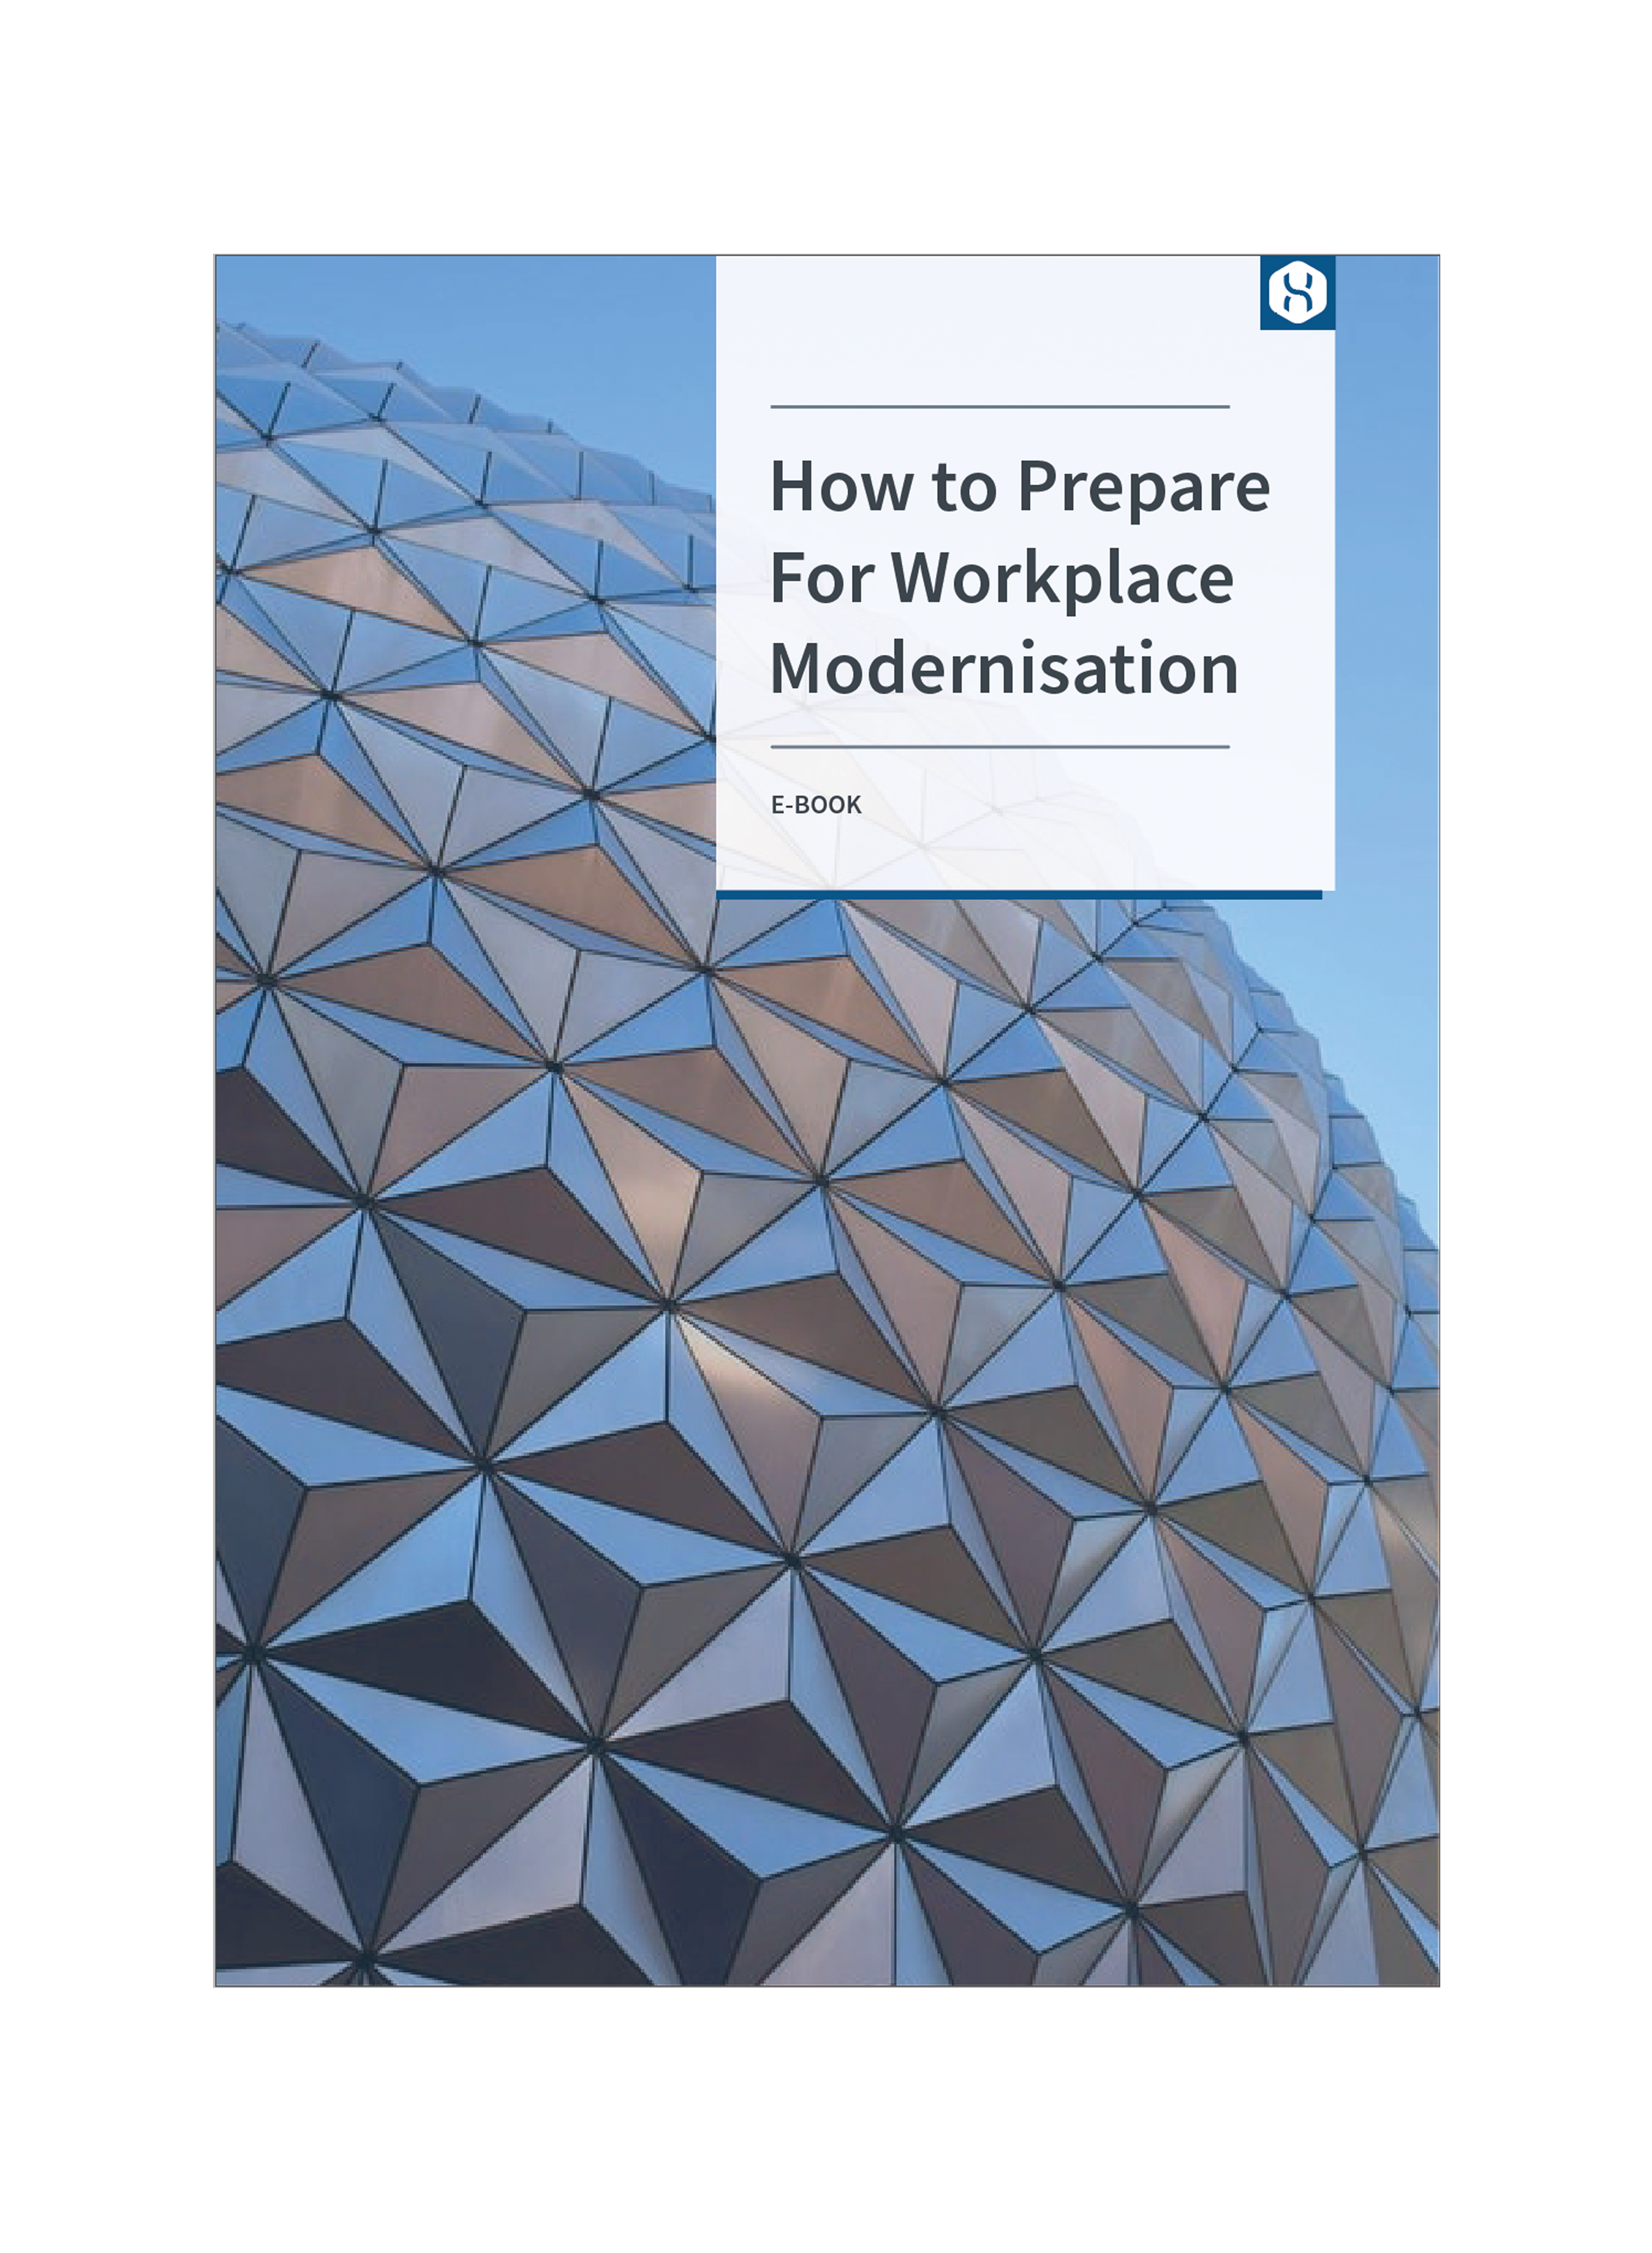 VDI E-book front cover: How to prepare for workplace modernisation